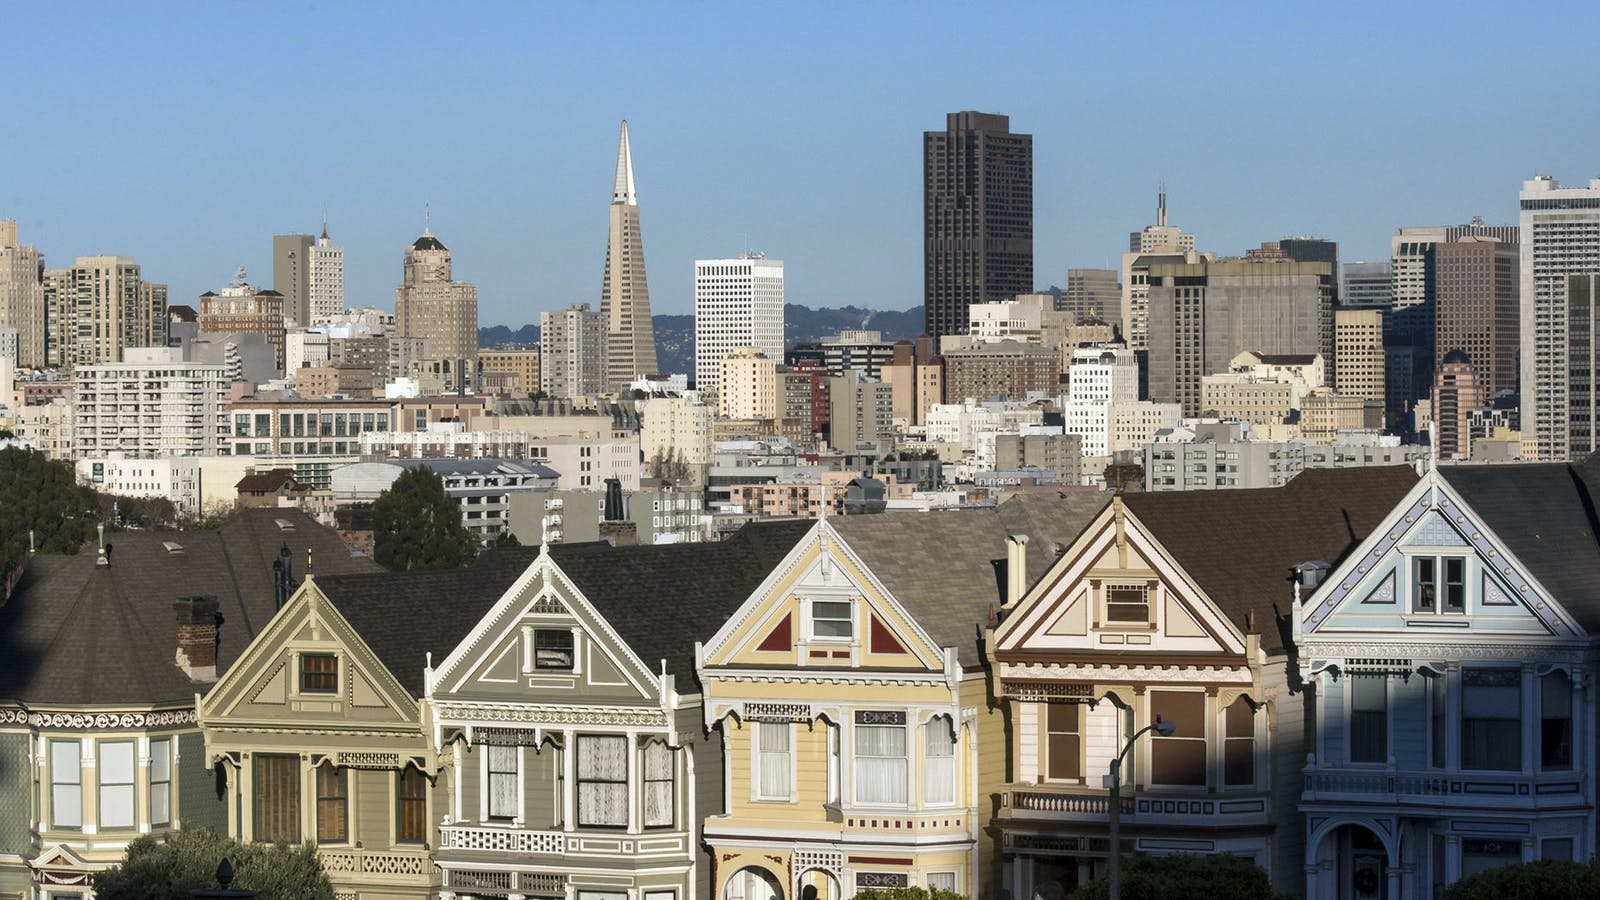 While San Francisco has long tested people's budgets, the city has seen 'unprecedented' growth in housing prices recently. Photo: Bloomberg